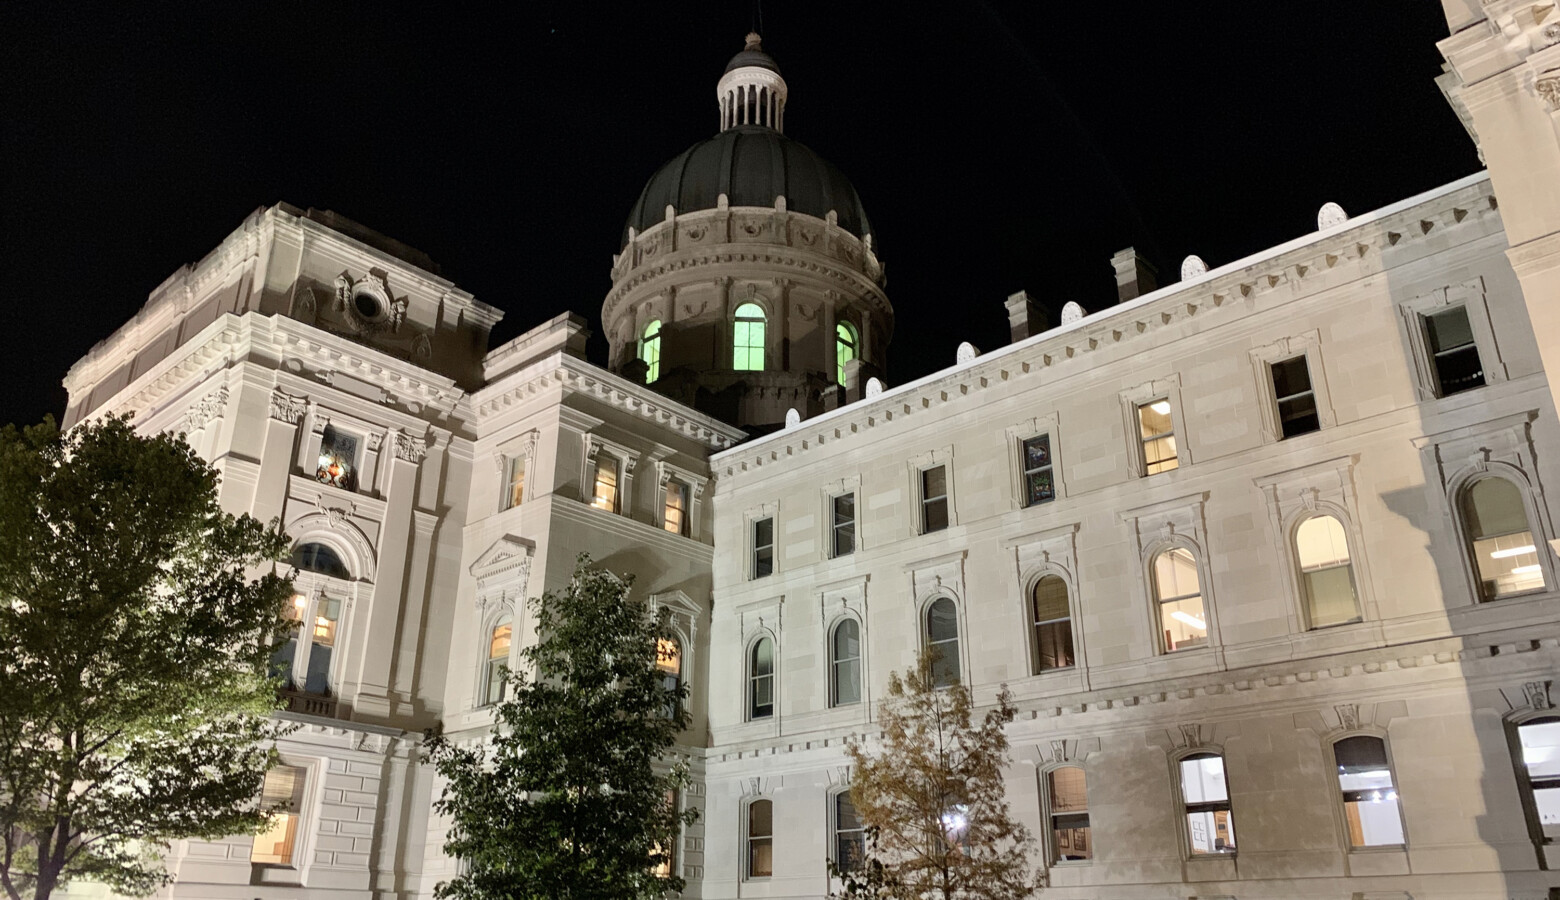 A senior Indiana budget official says the state is somewhat paralyzed by conflicting directives from the federal government over how it can spend COVID-19 relief dollars. (Brandon Smith/IPB News)